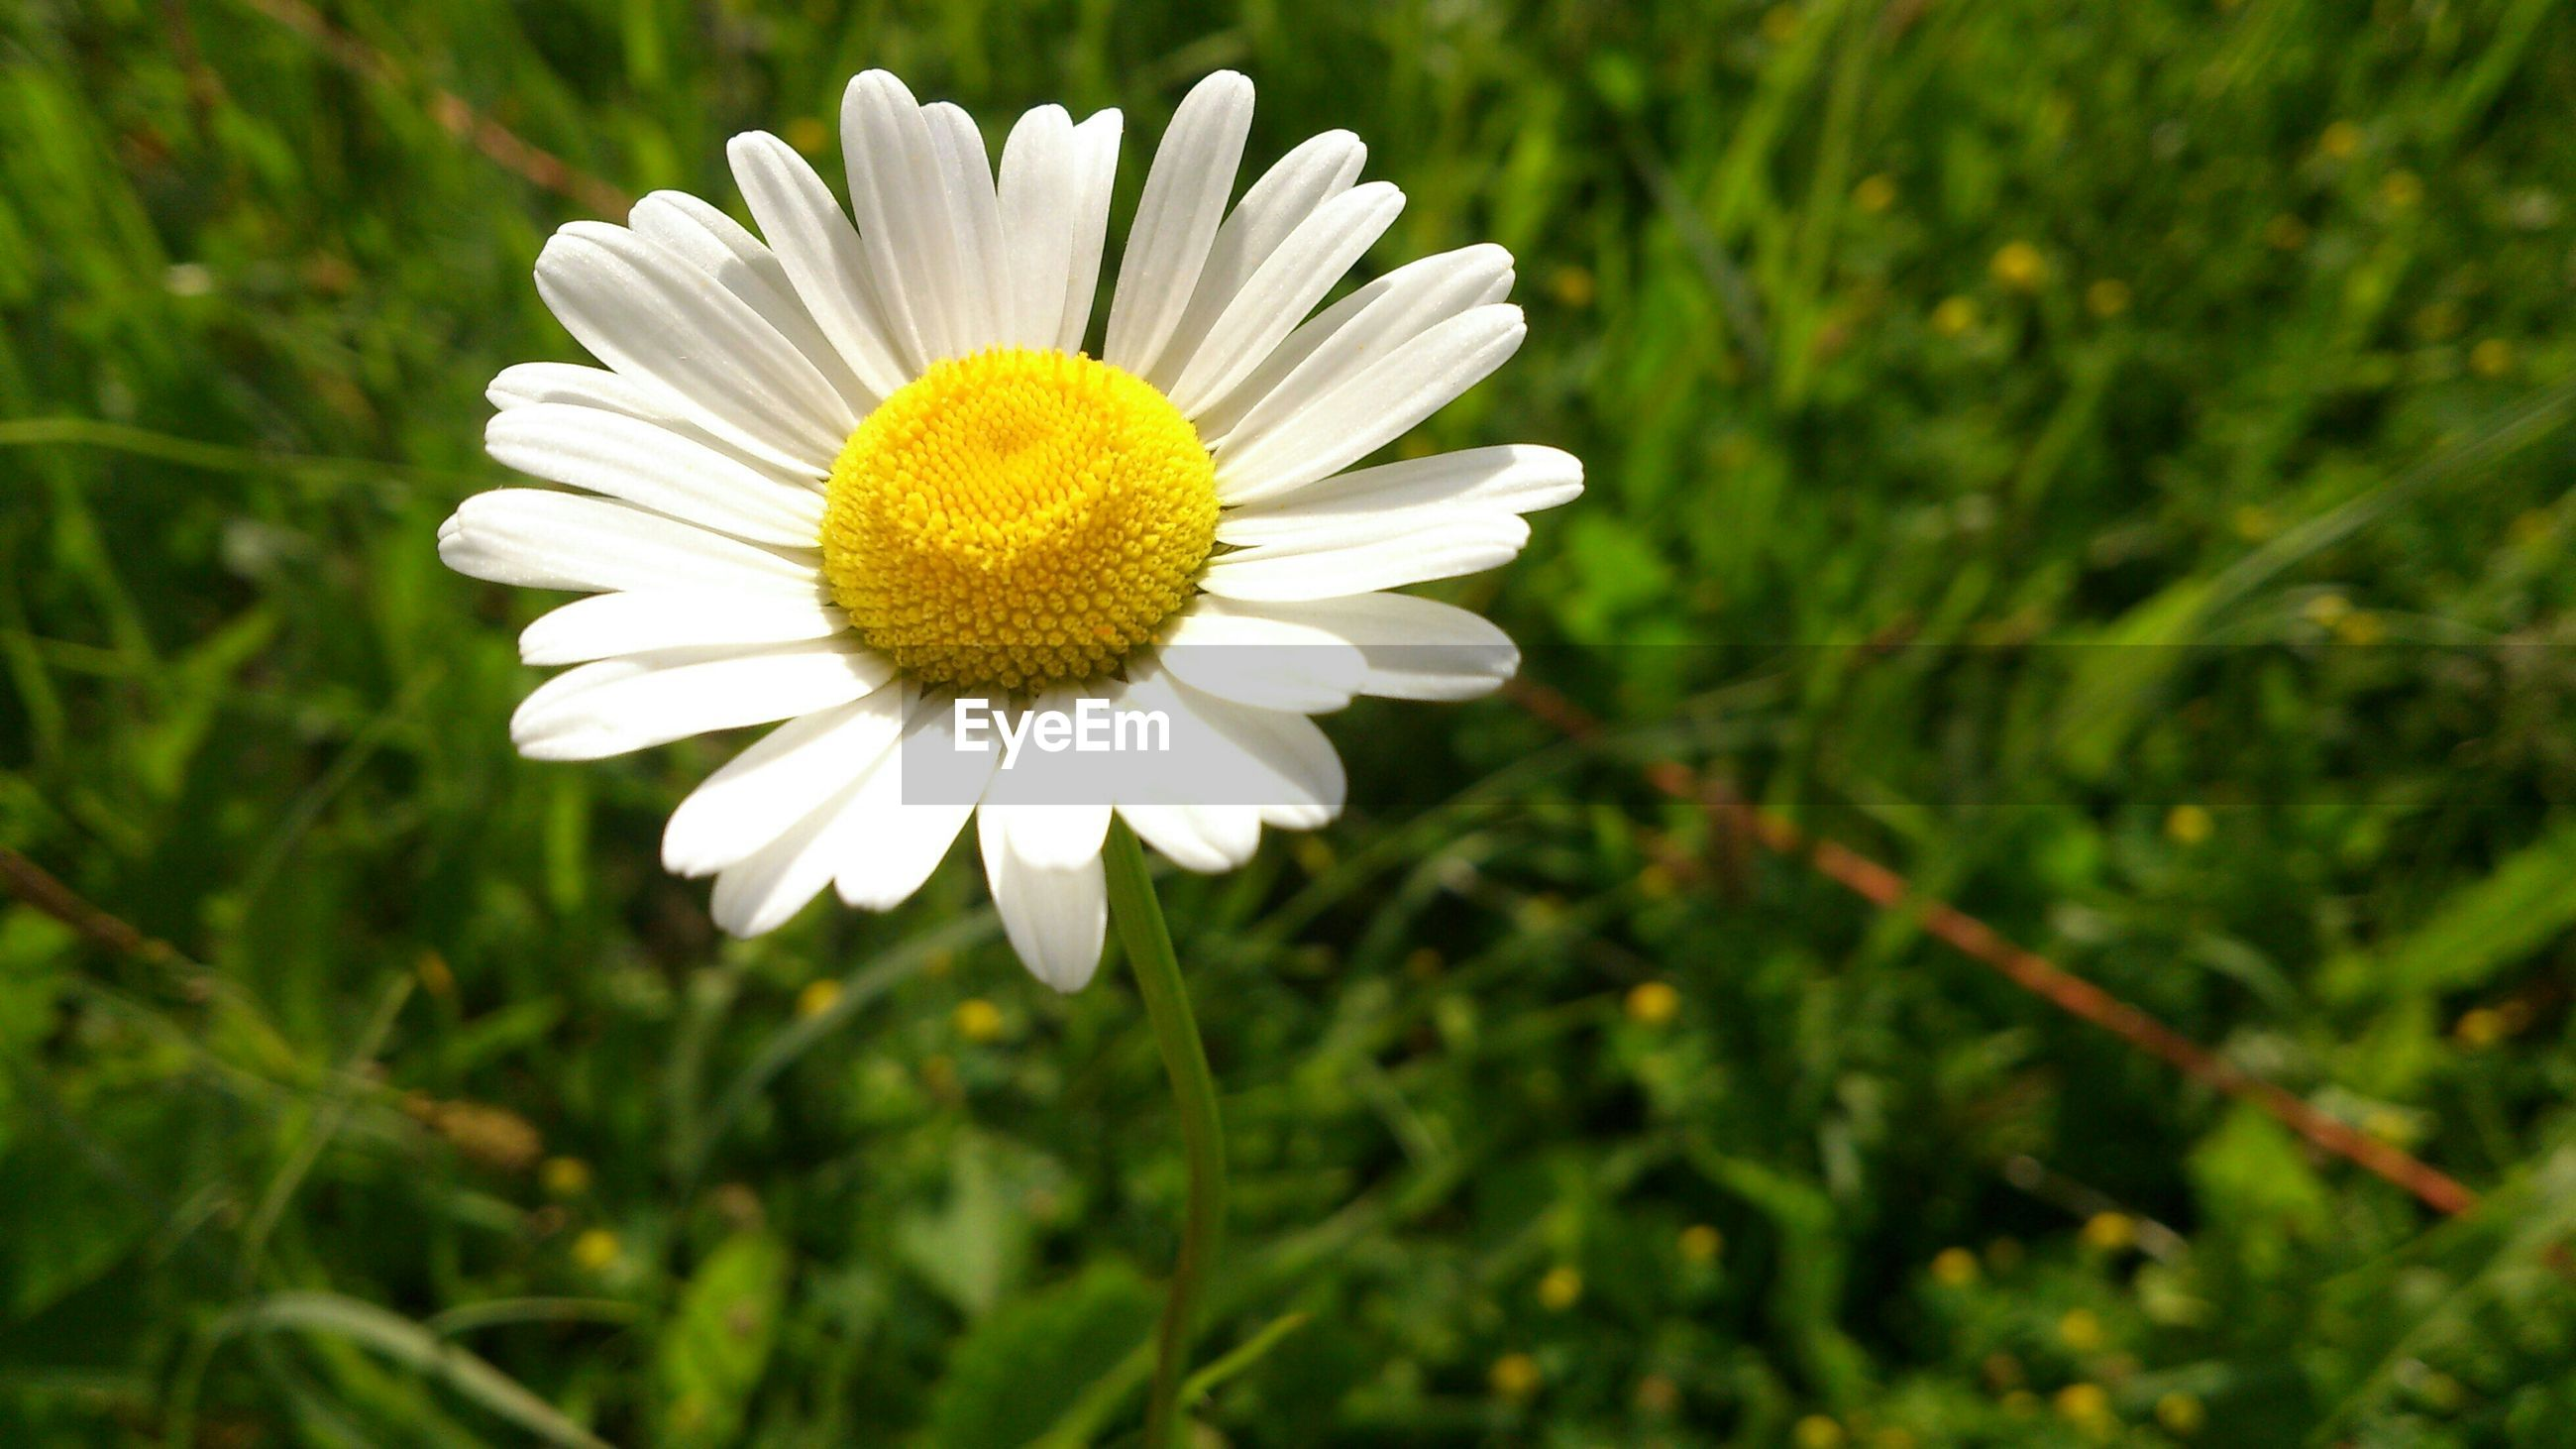 flower, freshness, petal, fragility, flower head, growth, beauty in nature, blooming, nature, daisy, focus on foreground, yellow, white color, close-up, plant, field, pollen, single flower, in bloom, outdoors